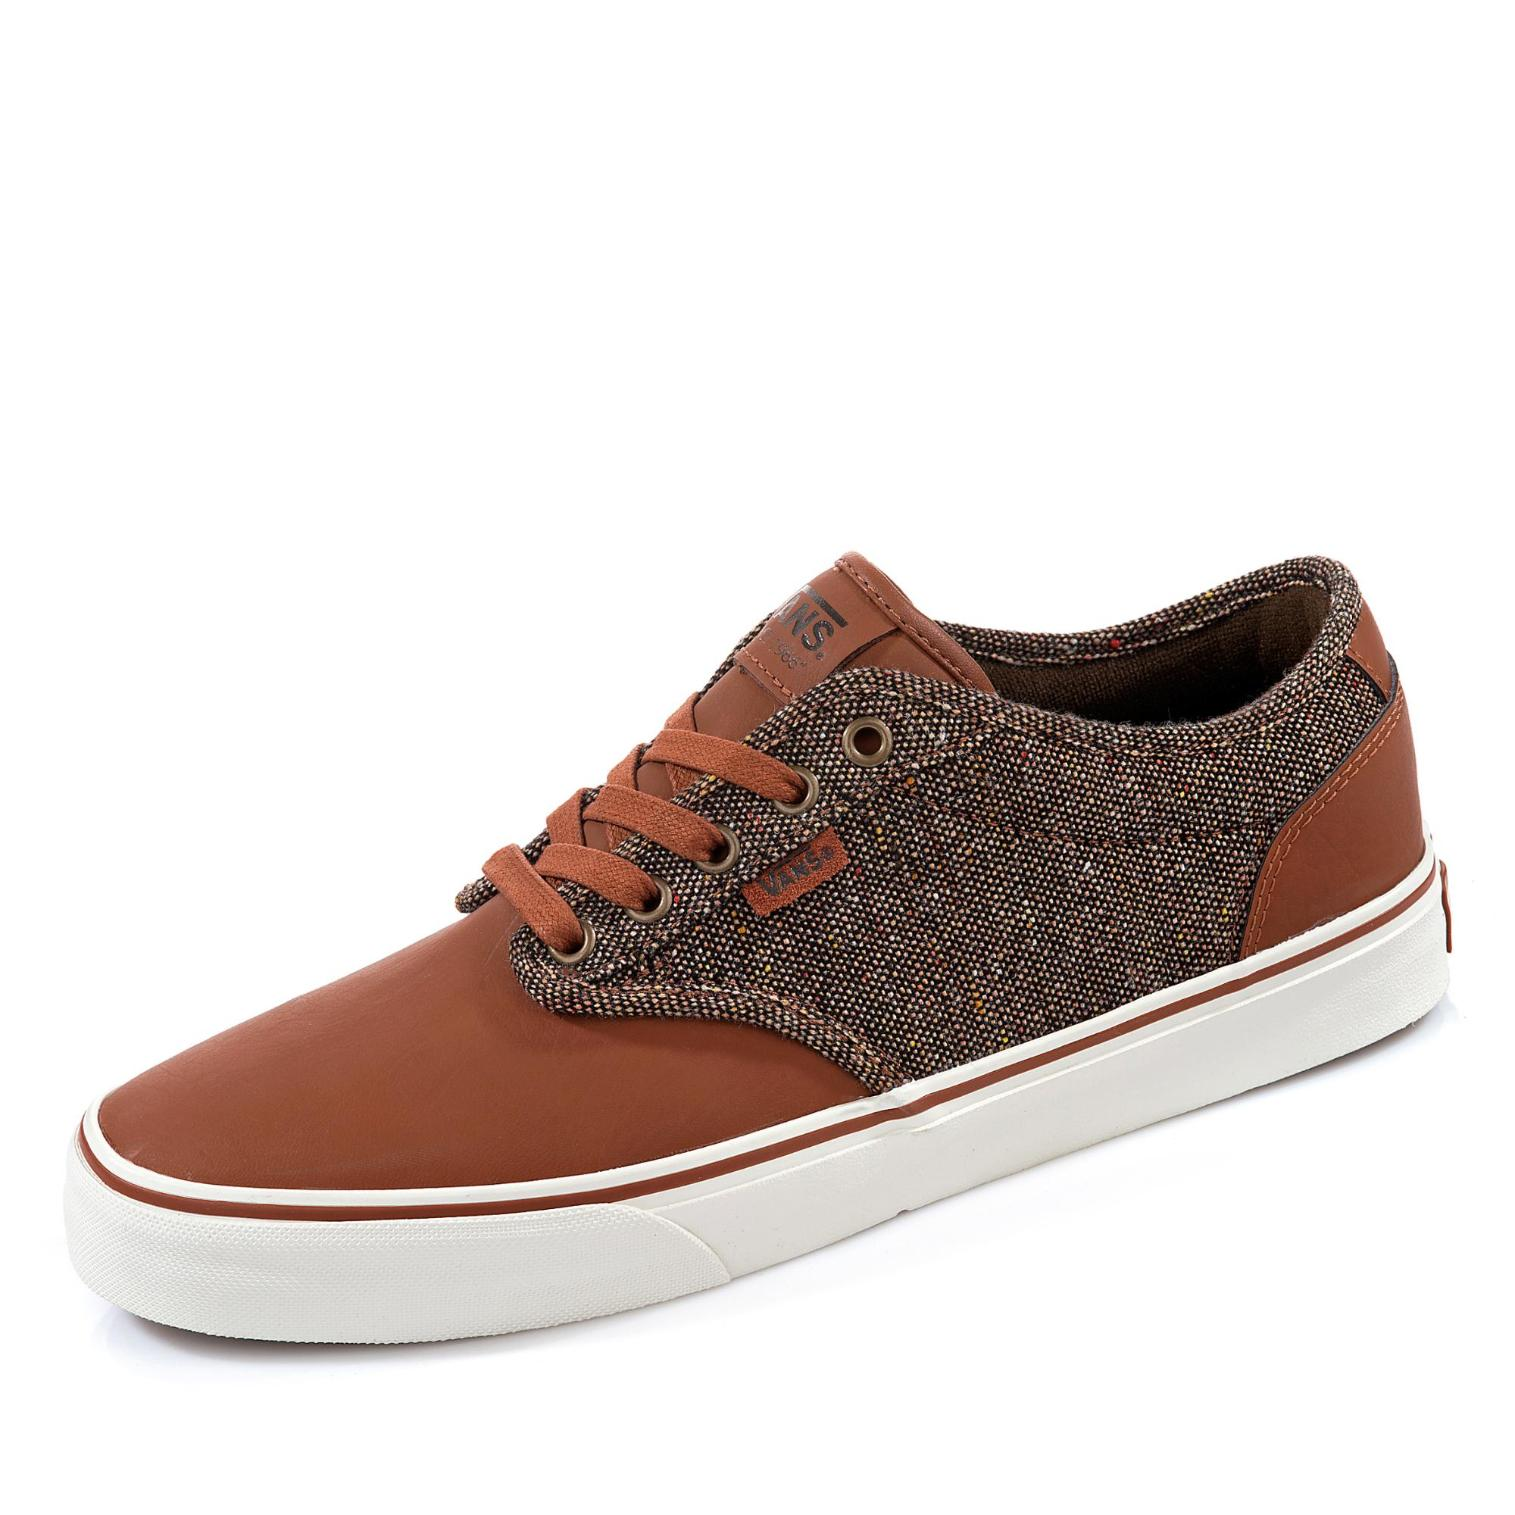 Vans Atwood Sneaker in Farbe braun